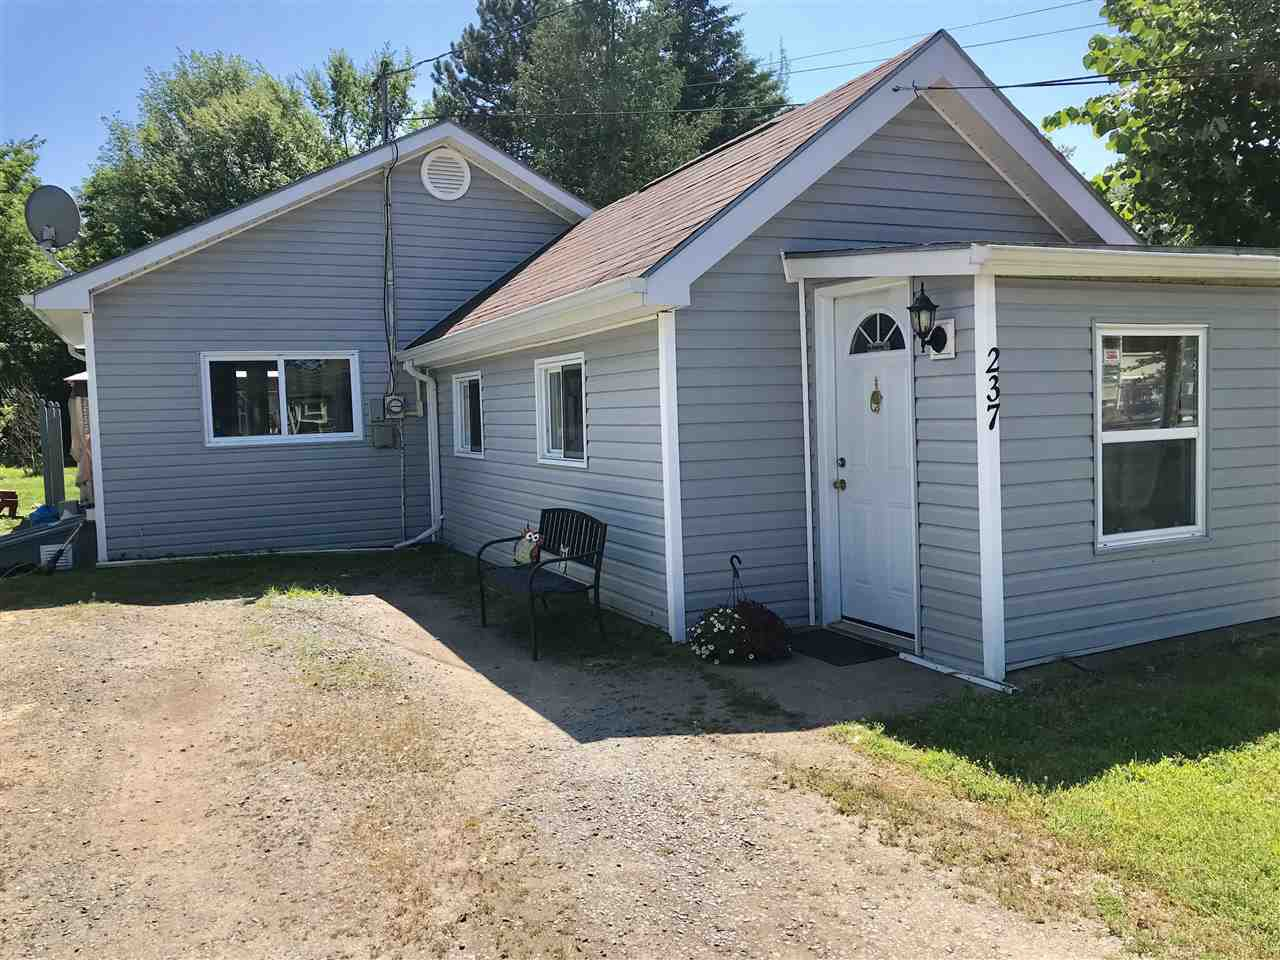 Main Photo: 237 Main Street in Berwick: 404-Kings County Residential for sale (Annapolis Valley)  : MLS®# 202007311